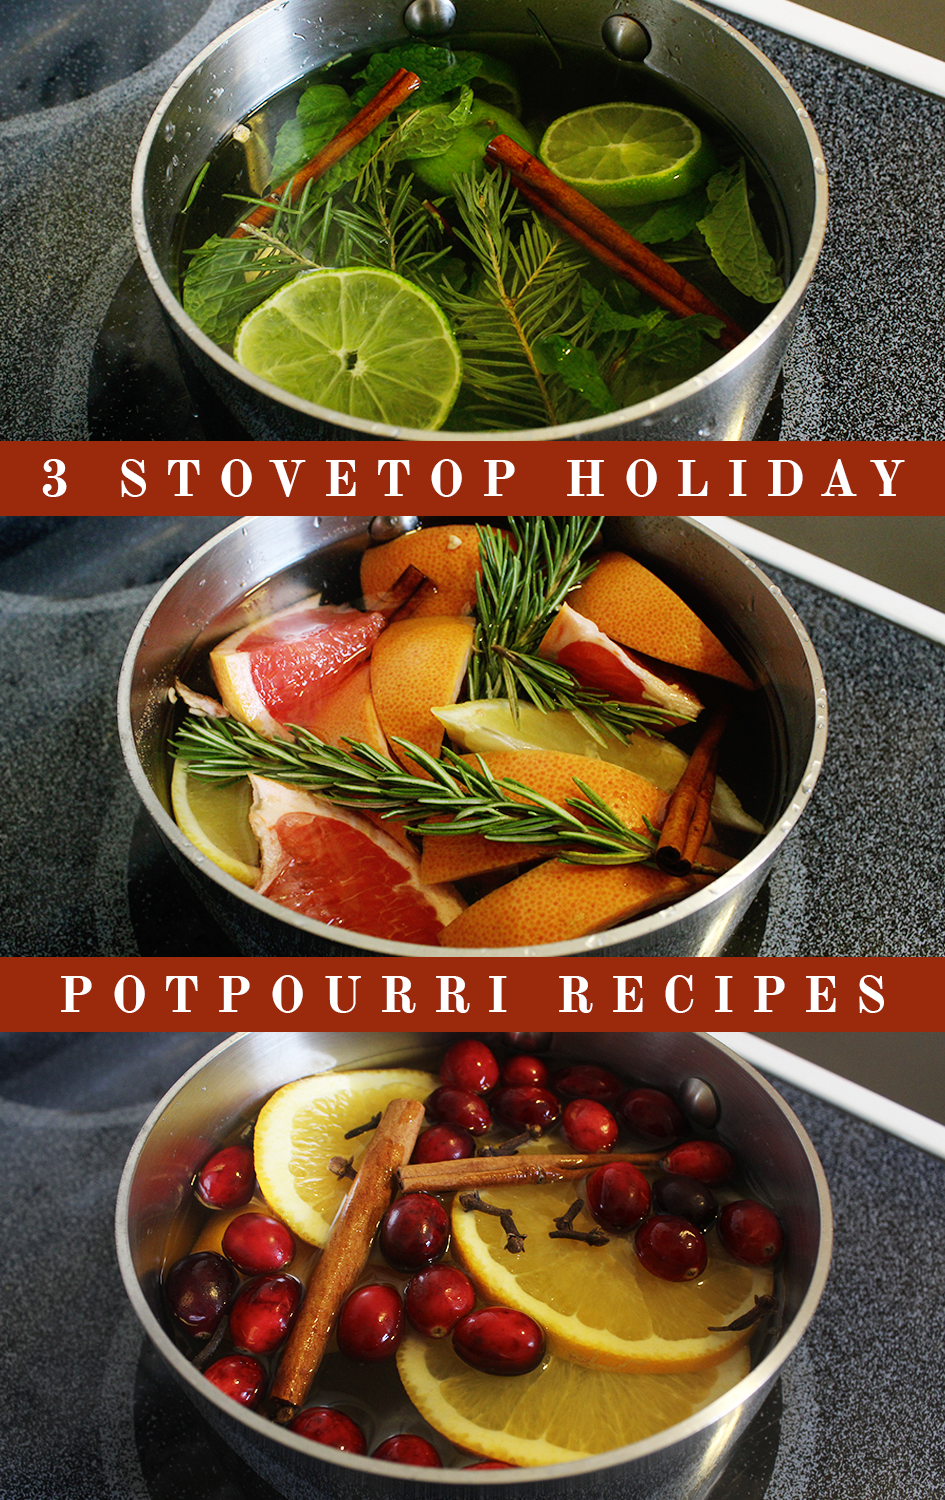 3 Stovetop Holiday Potpourri Recipes | Making Your Home Smell Like The Holidays